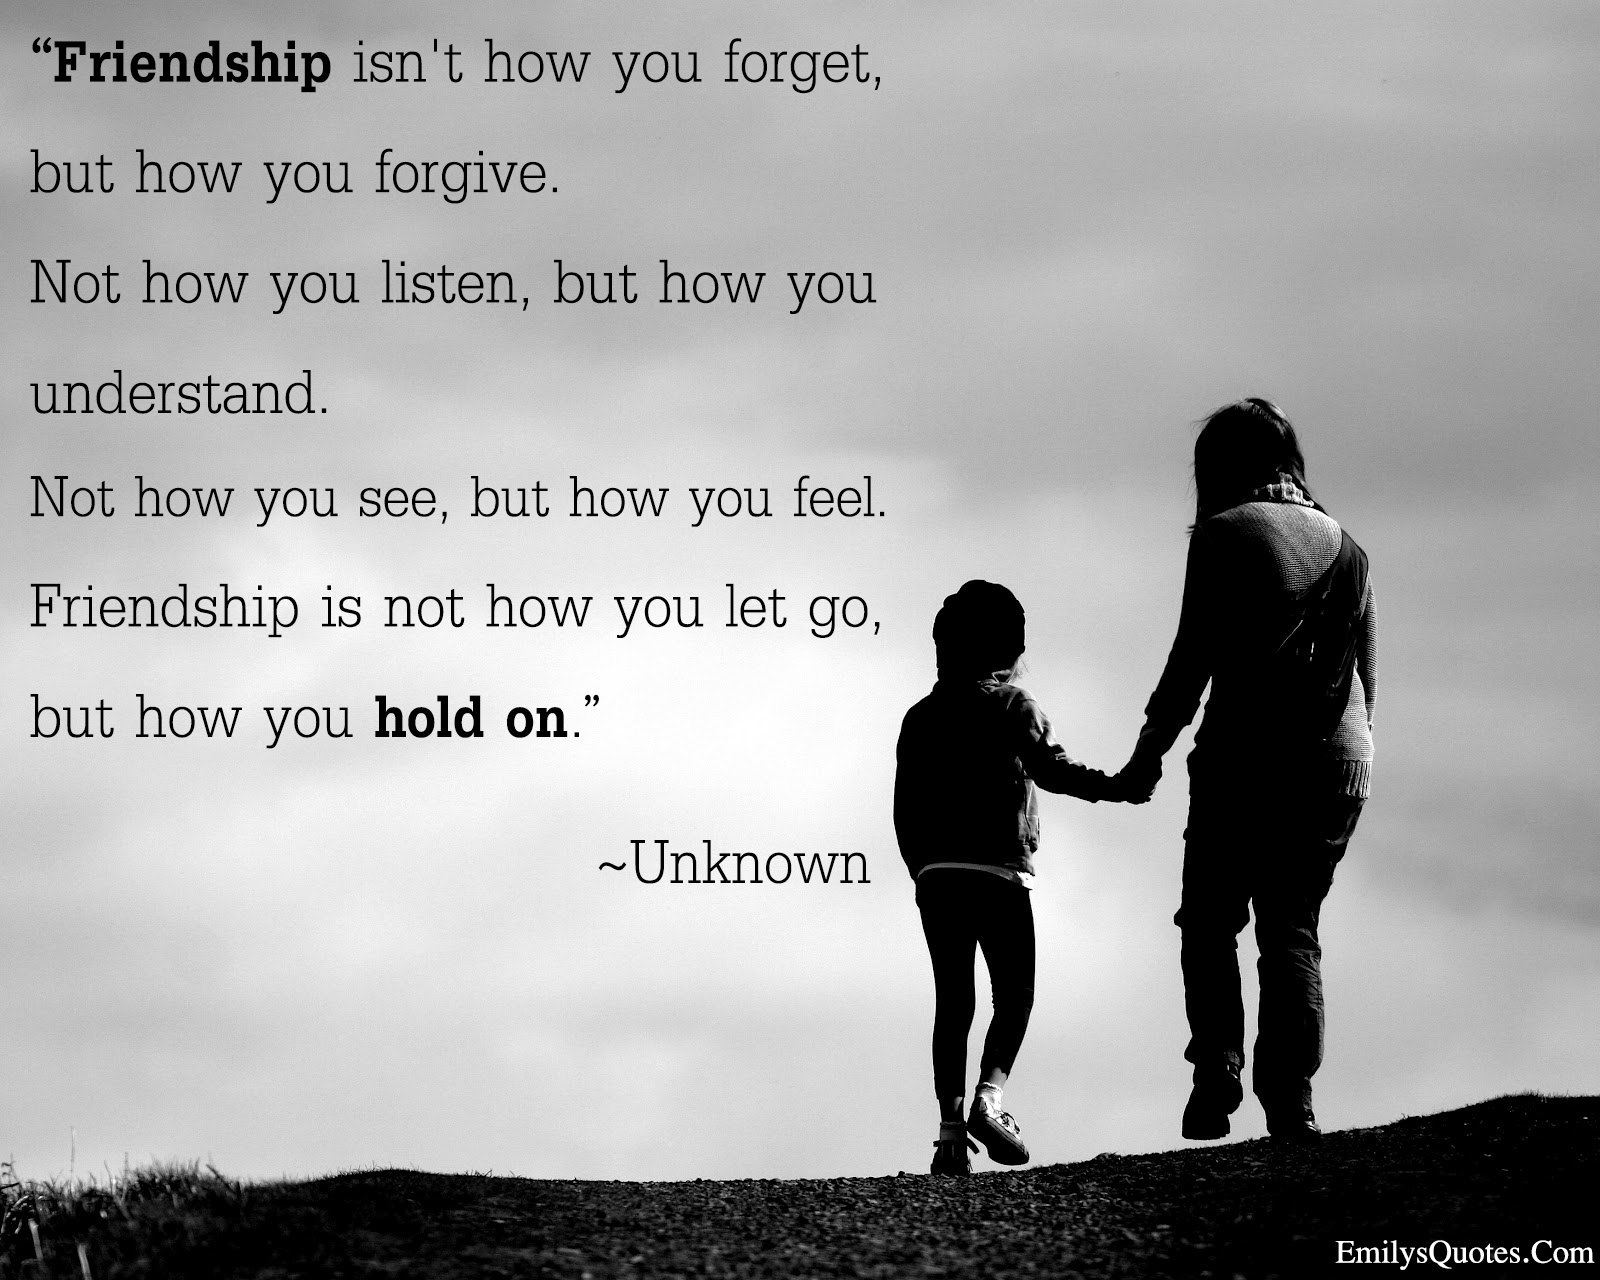 Turkish Quotes About Friendship Forgivness  Popular Inspirational Quotes At Emilysquotes